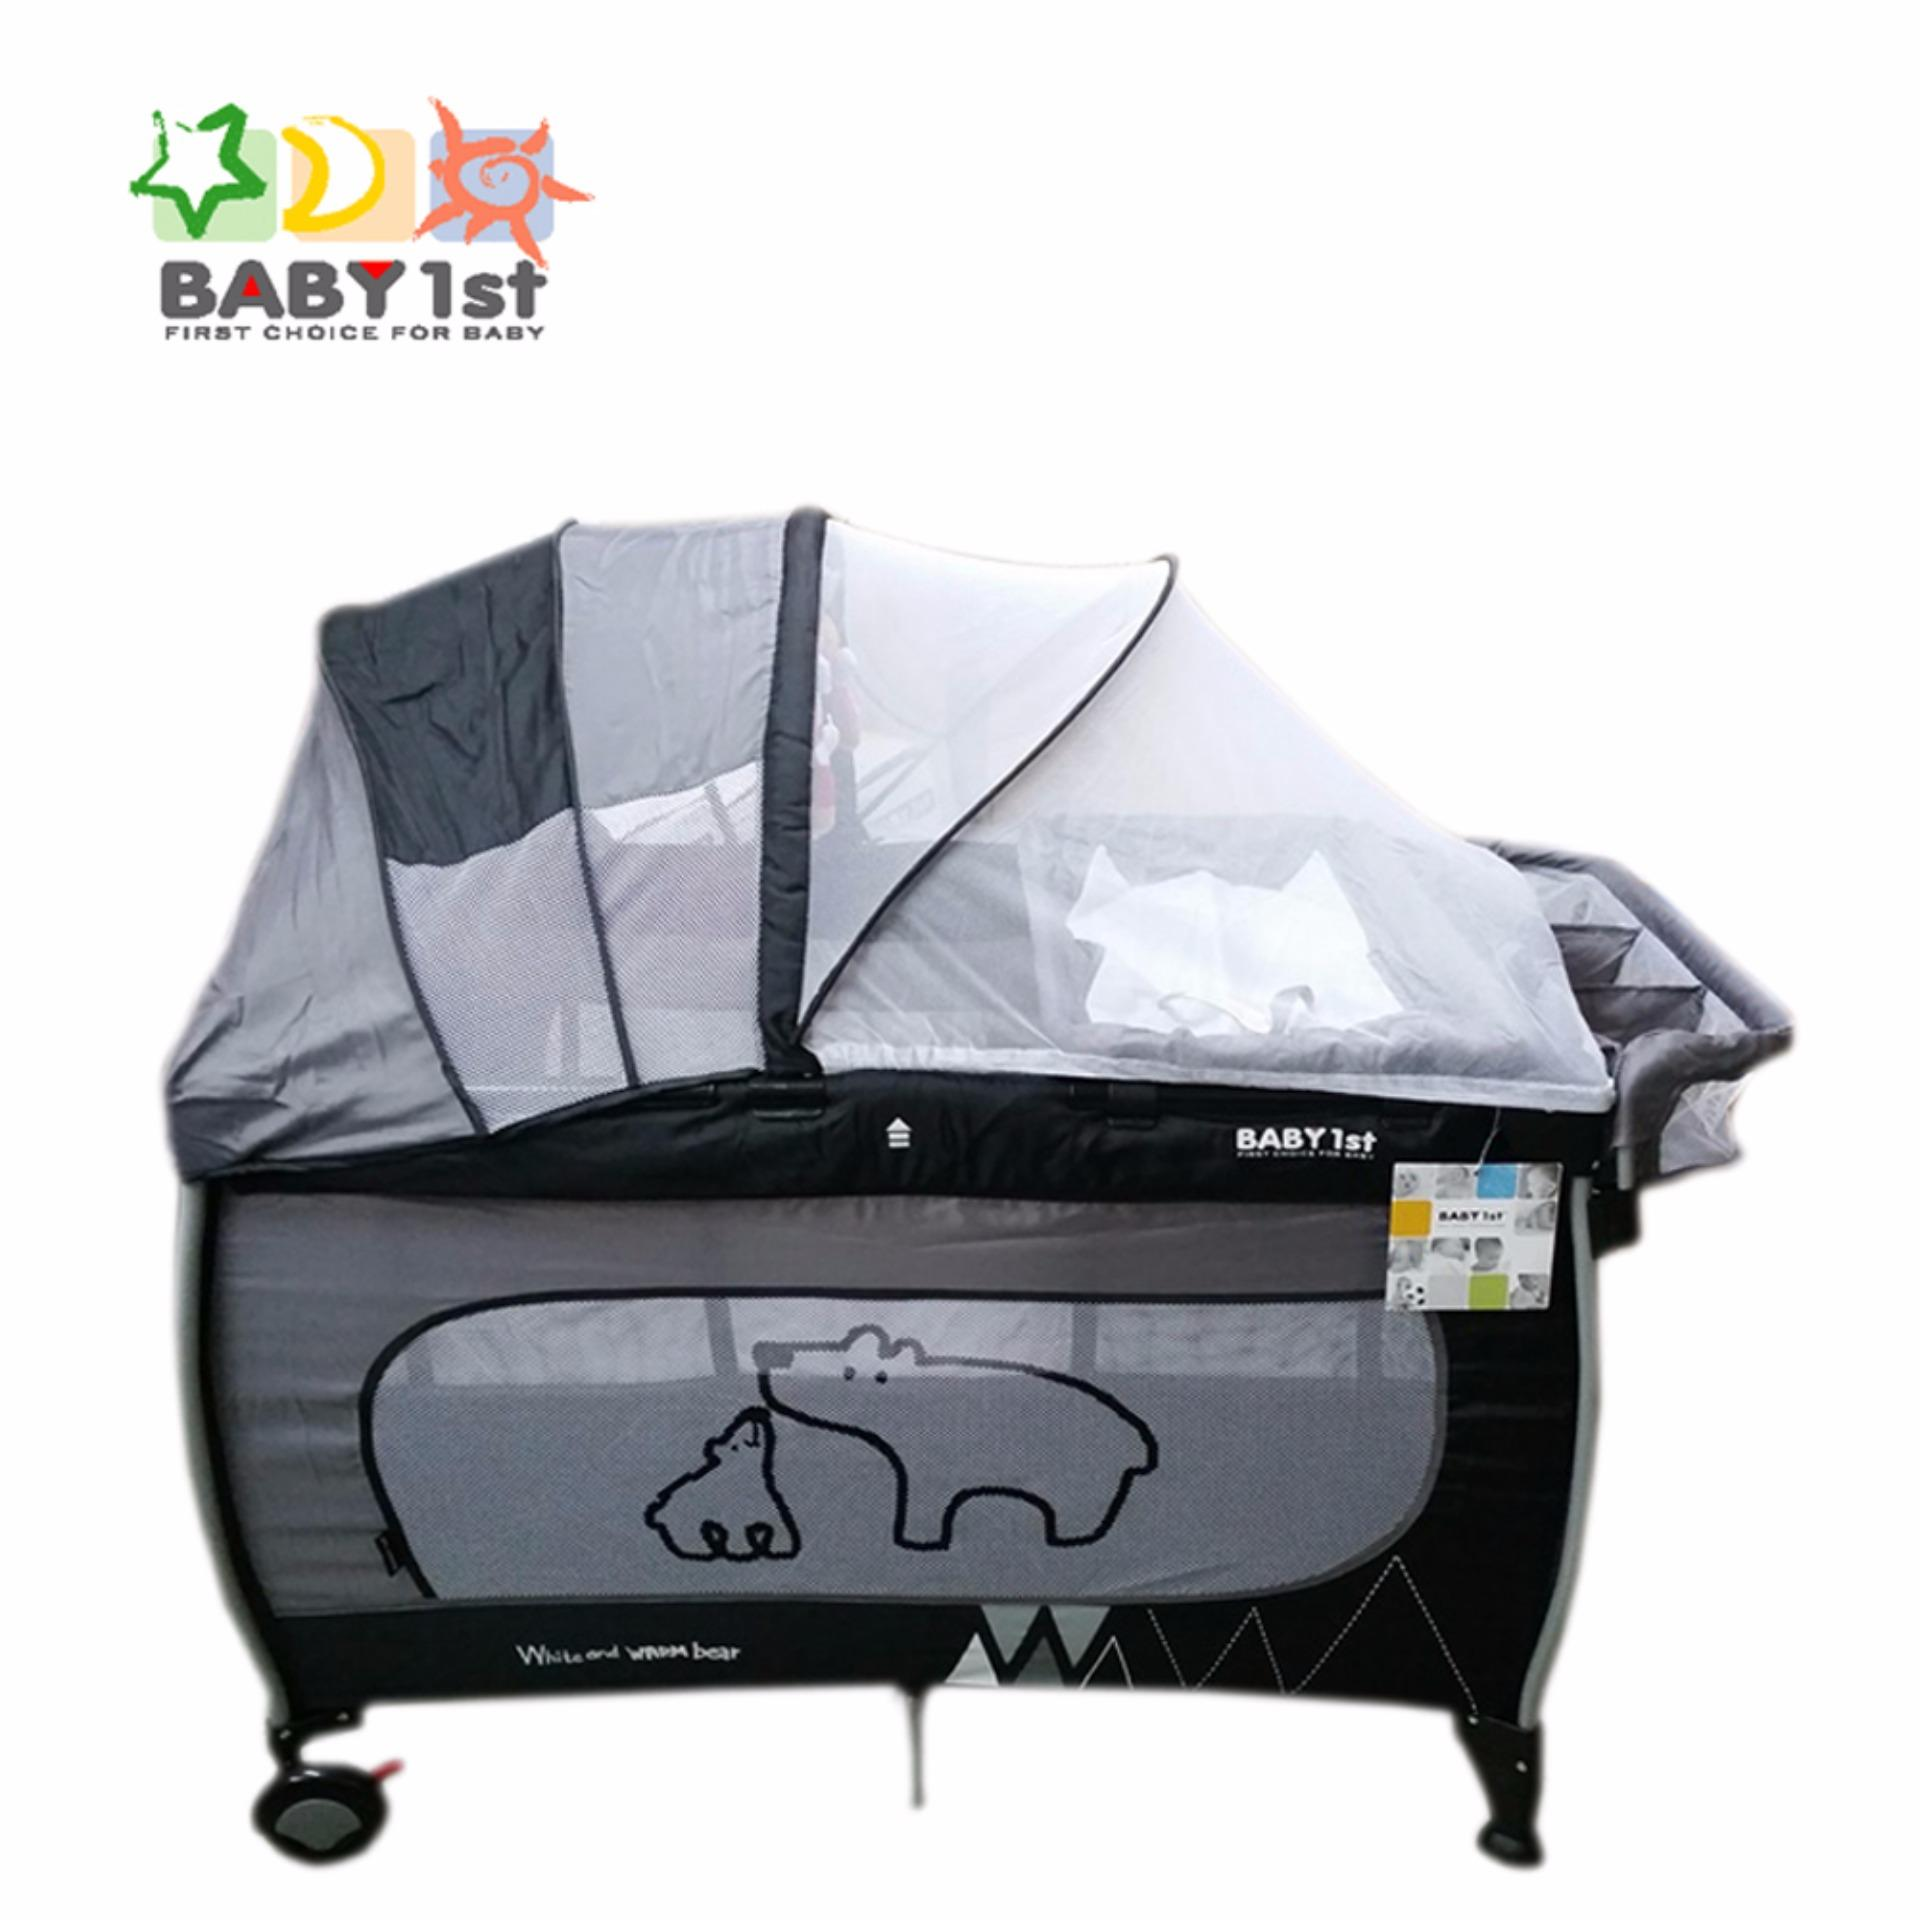 Crib for babies philippines - Baby 1st P 516pa Portable Playpen Diaper Changer 2nd Decker With Rocker Gray